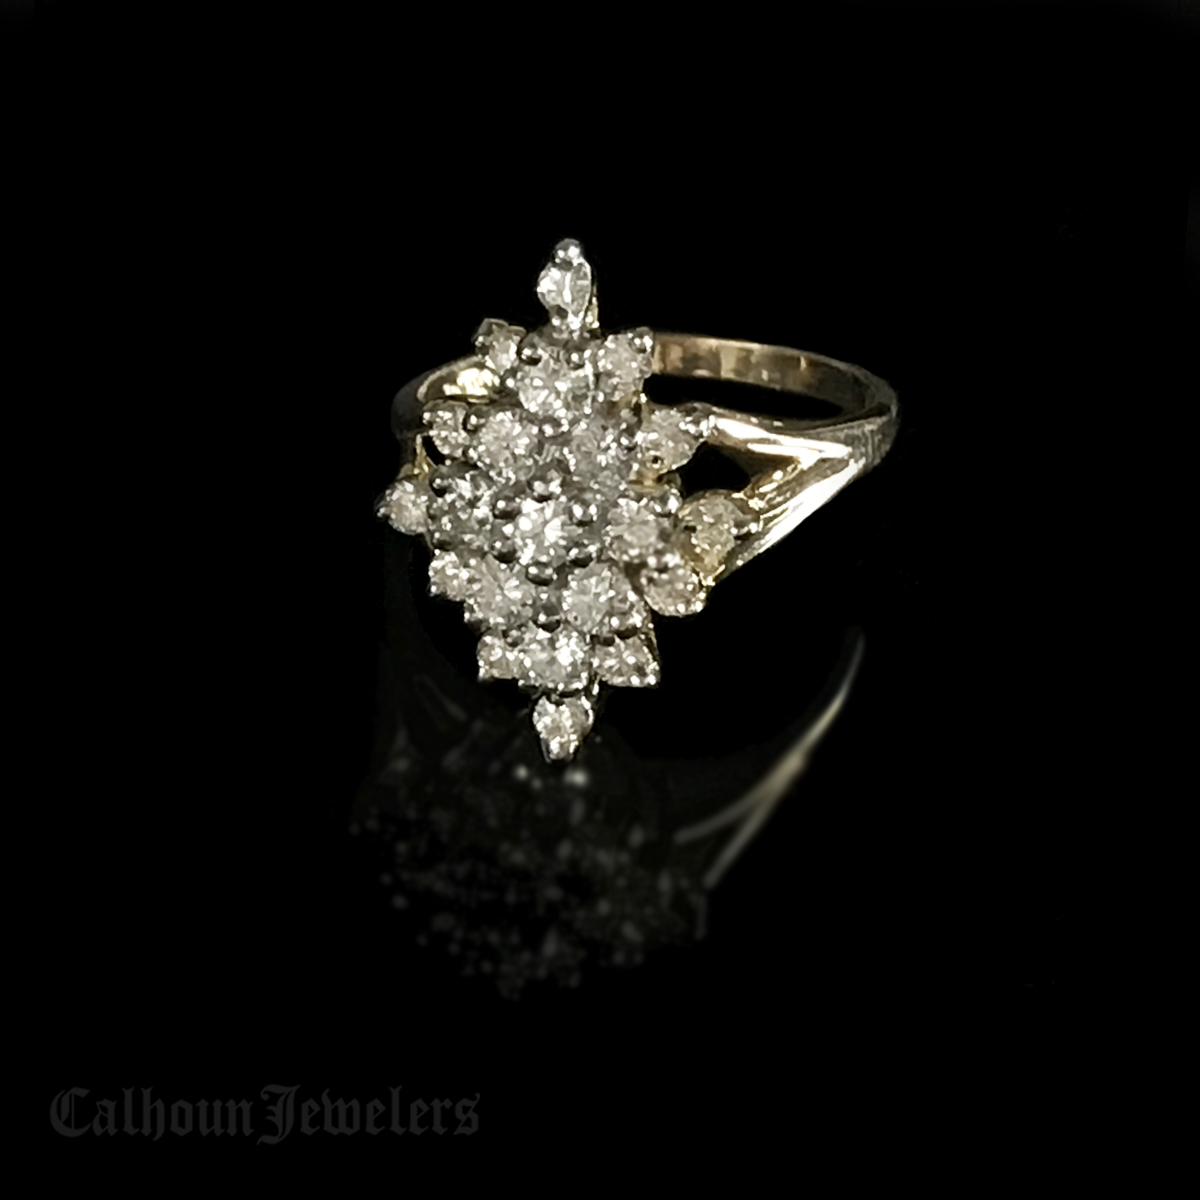 Vintage, Antique & Estate Rings | Calhoun Jewelers, Royersford, PA